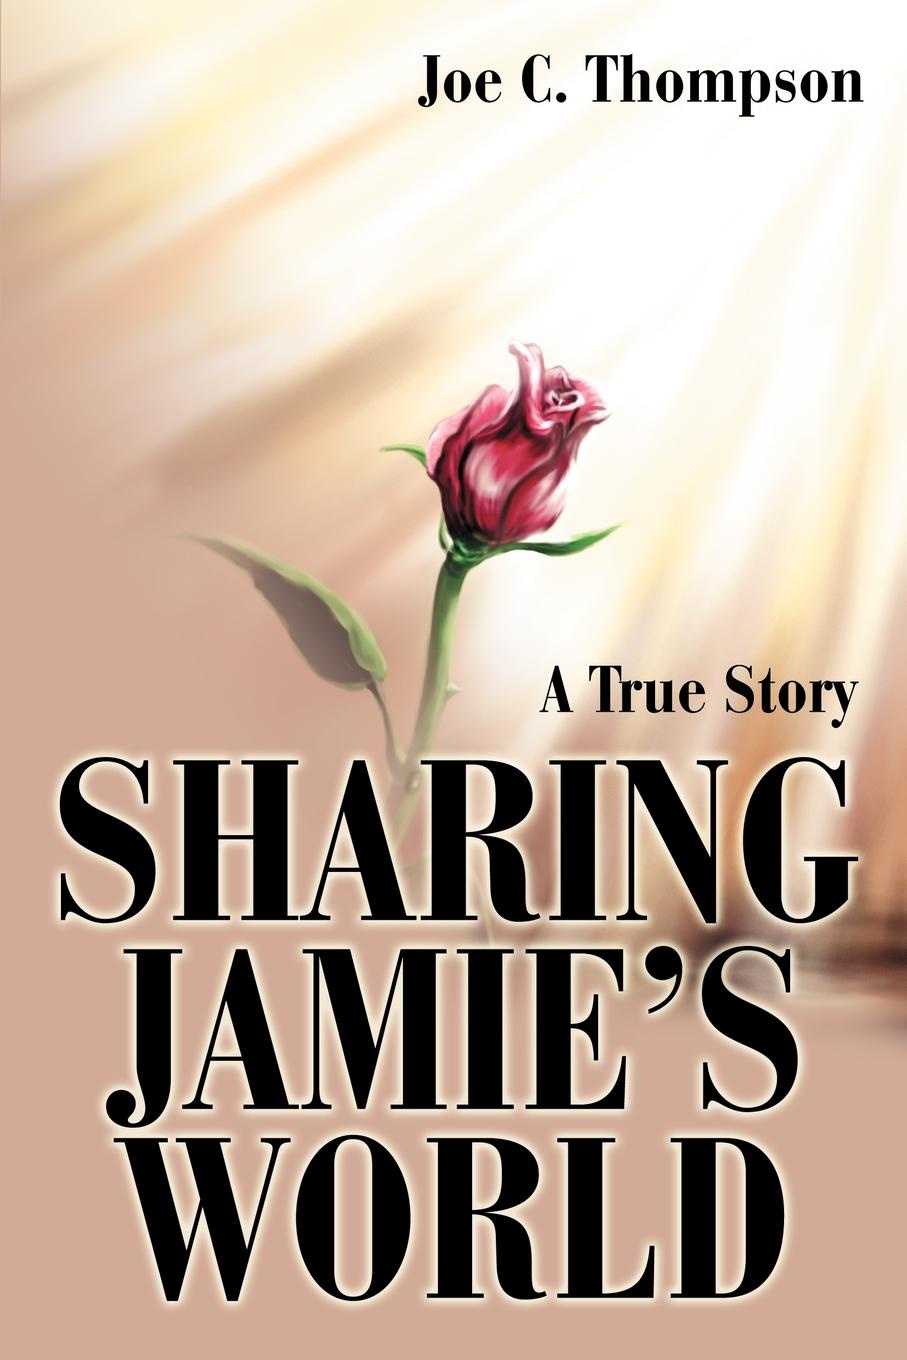 Joe C. Thompson Sharing Jamie.s World. A True Story thomas h groome christian religious education sharing our story and vision